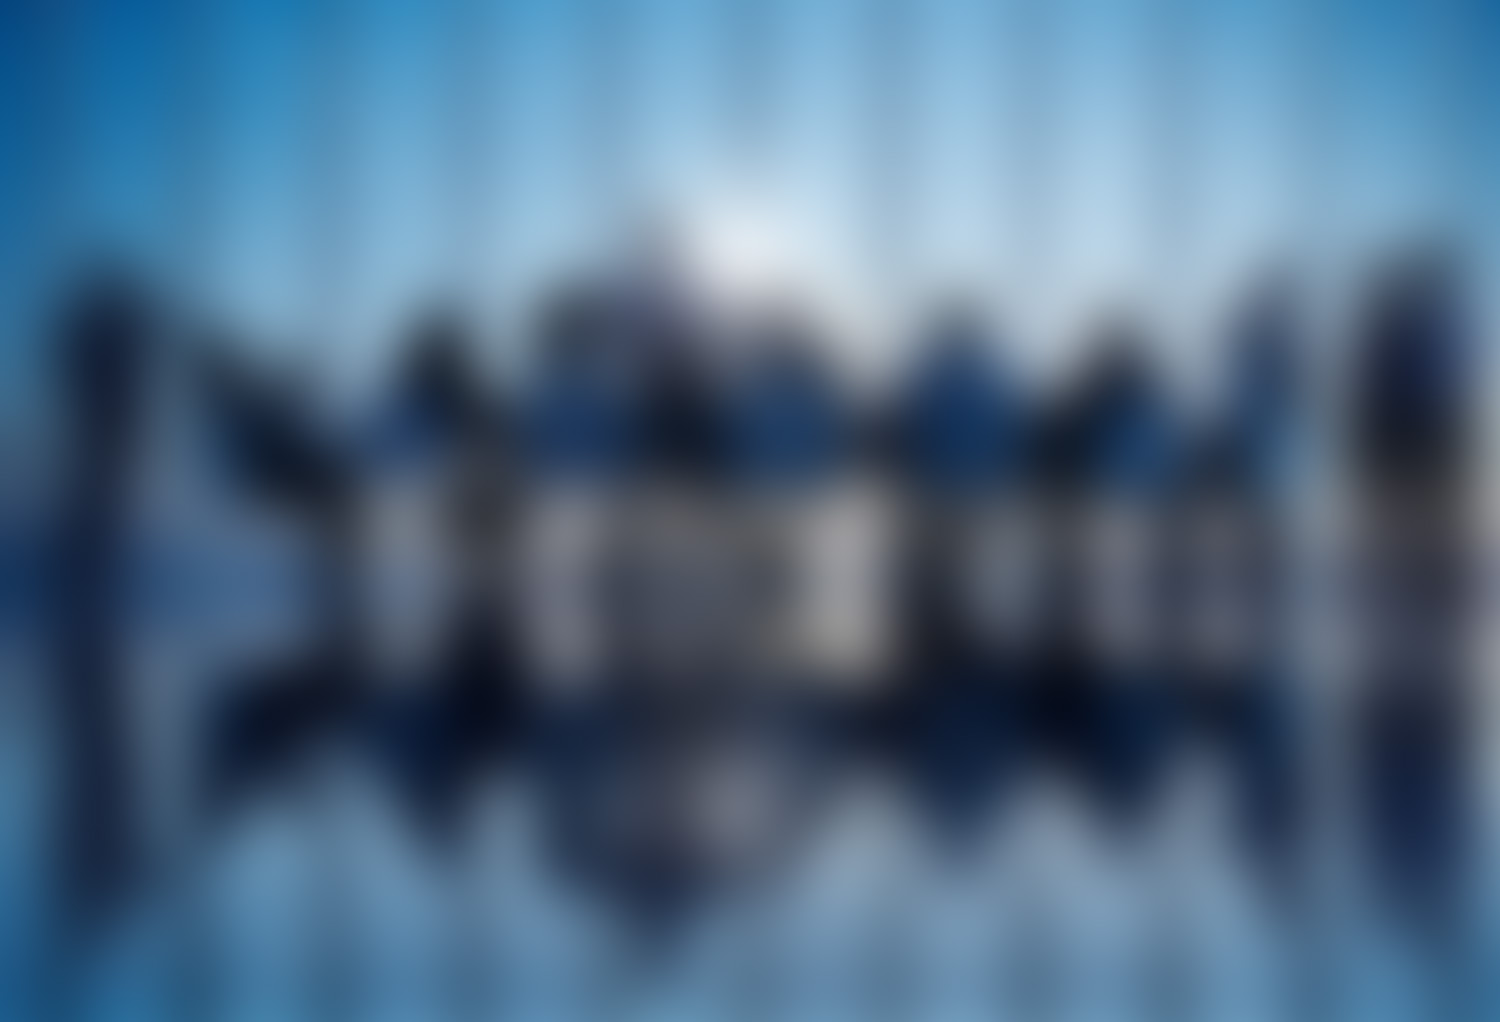 blurred office meeting background